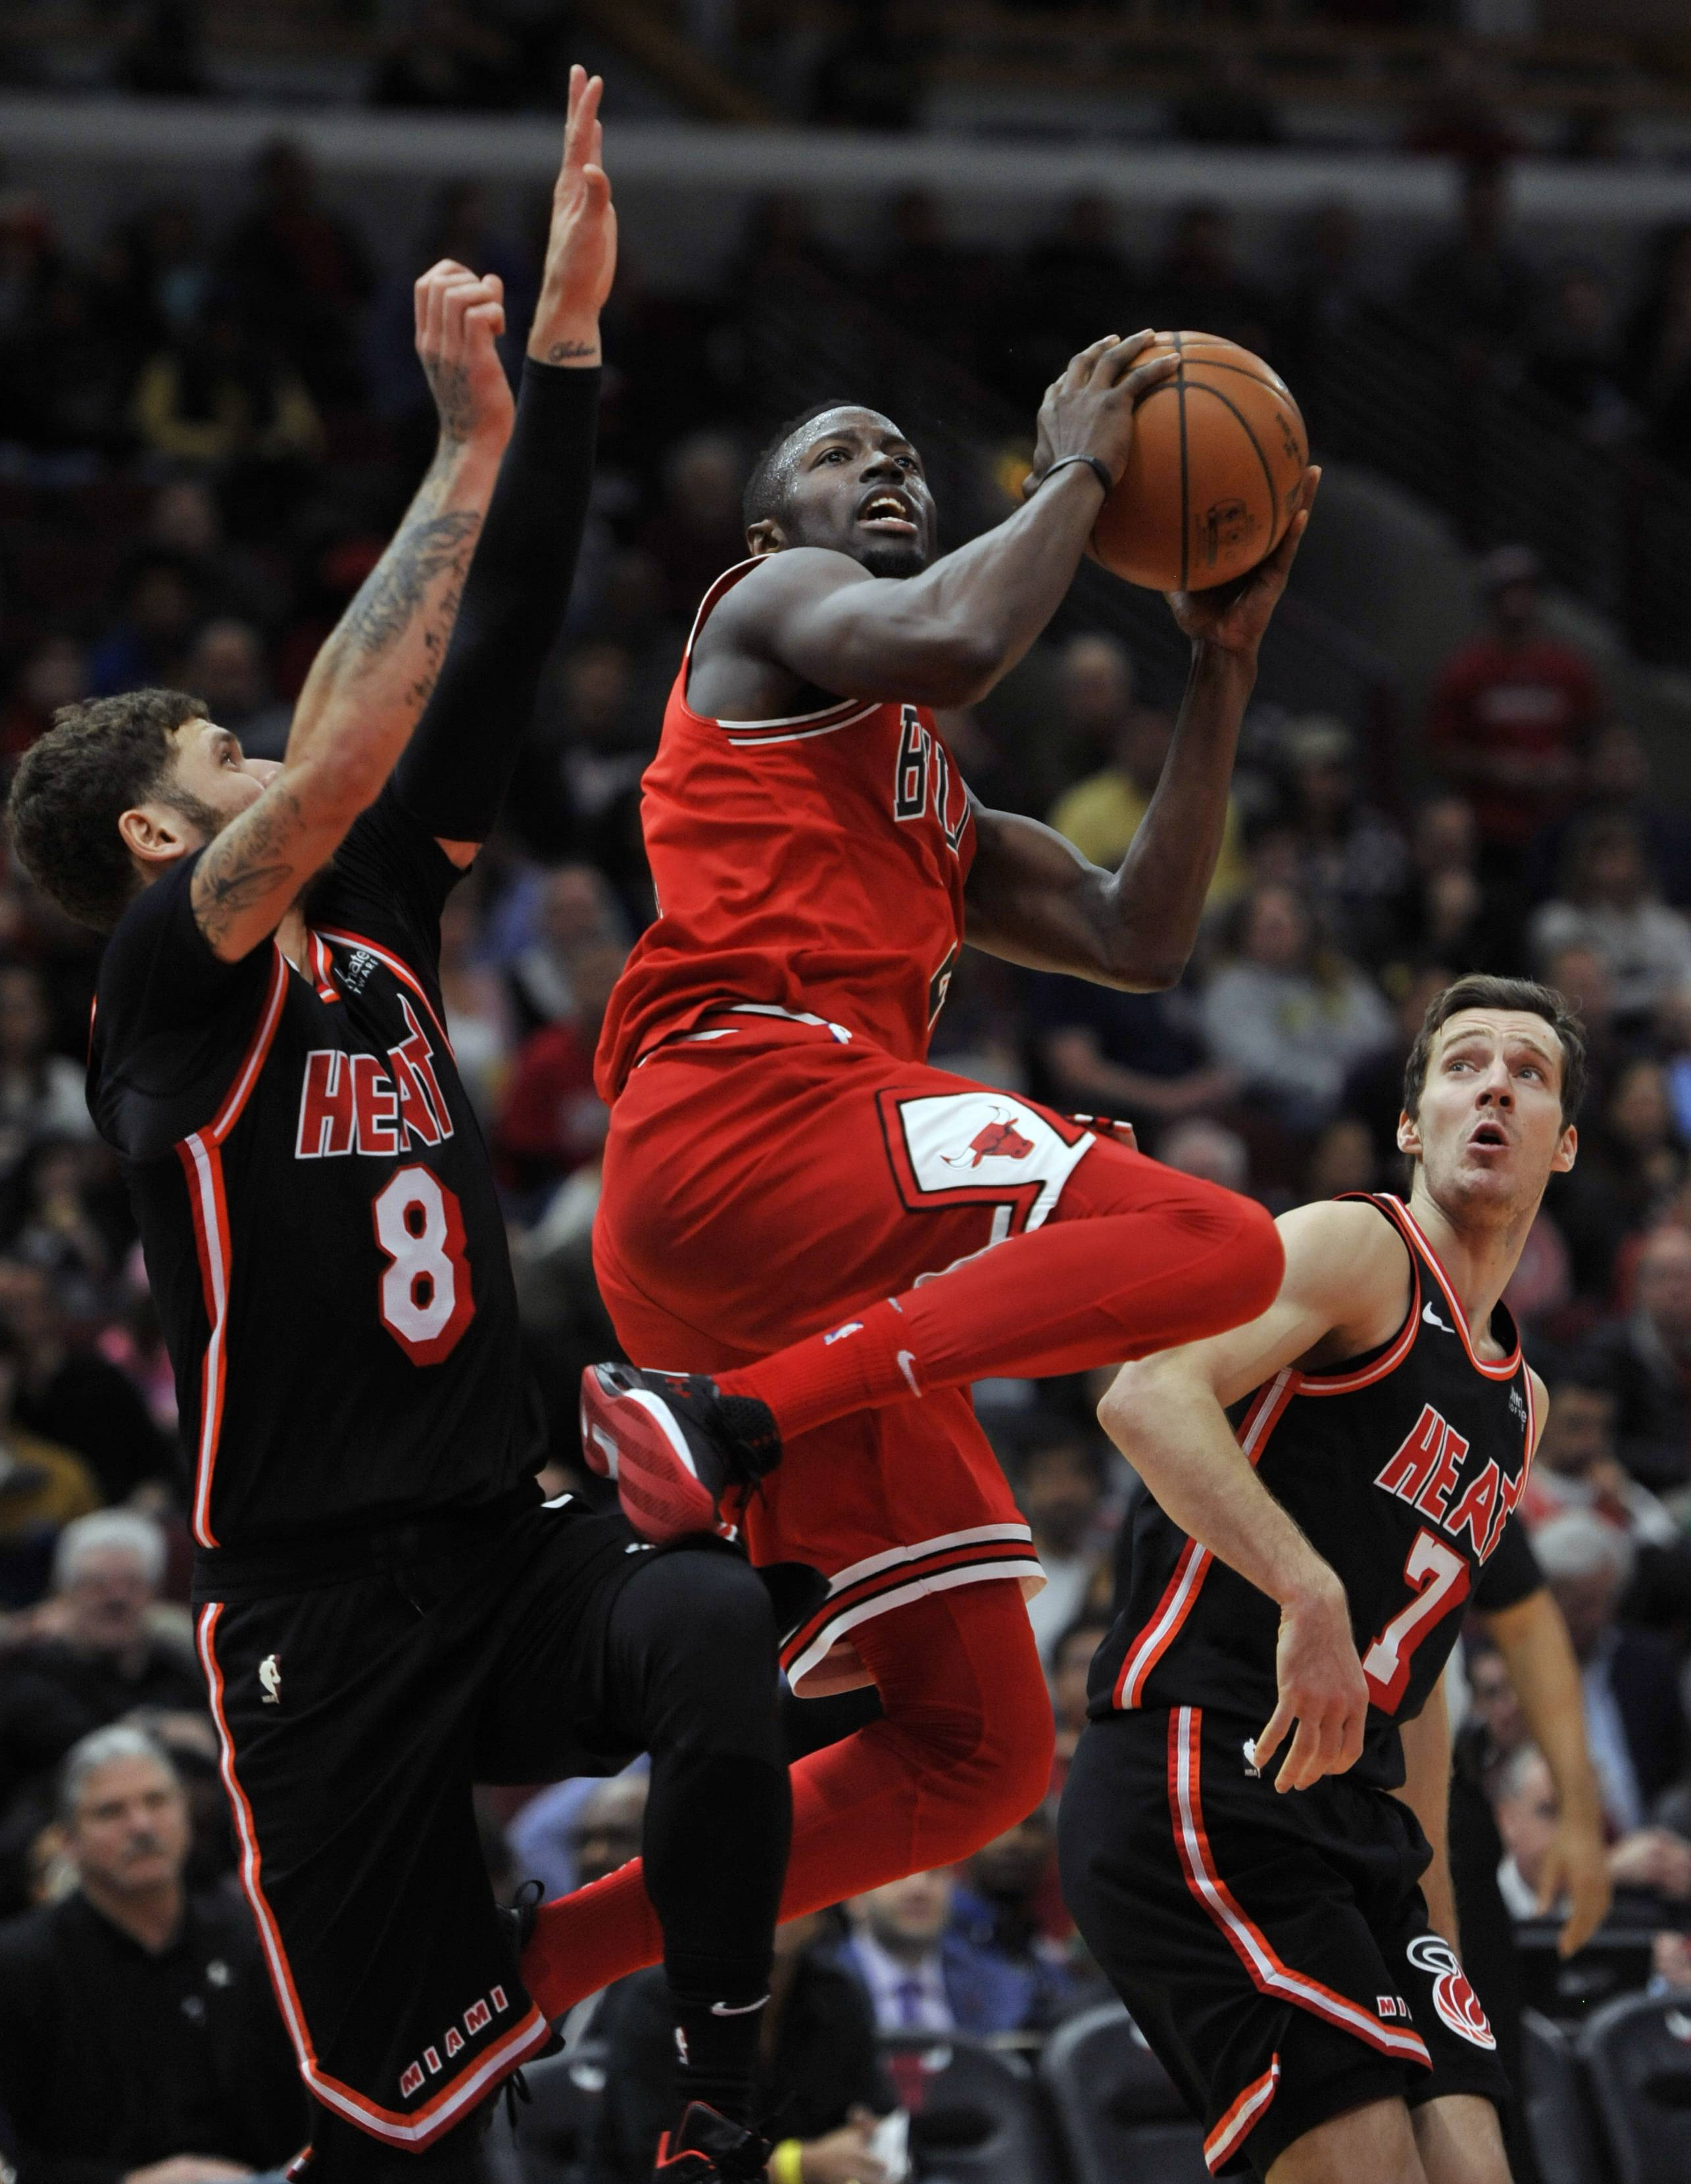 Chicago Bulls' Jerian Grant goes up for a shot against Miami Heat's Tyler Johnson (8) and Goran Dragic (7) of Slovenia, during the second half Sunday in Chicago. Miami won 100-93.